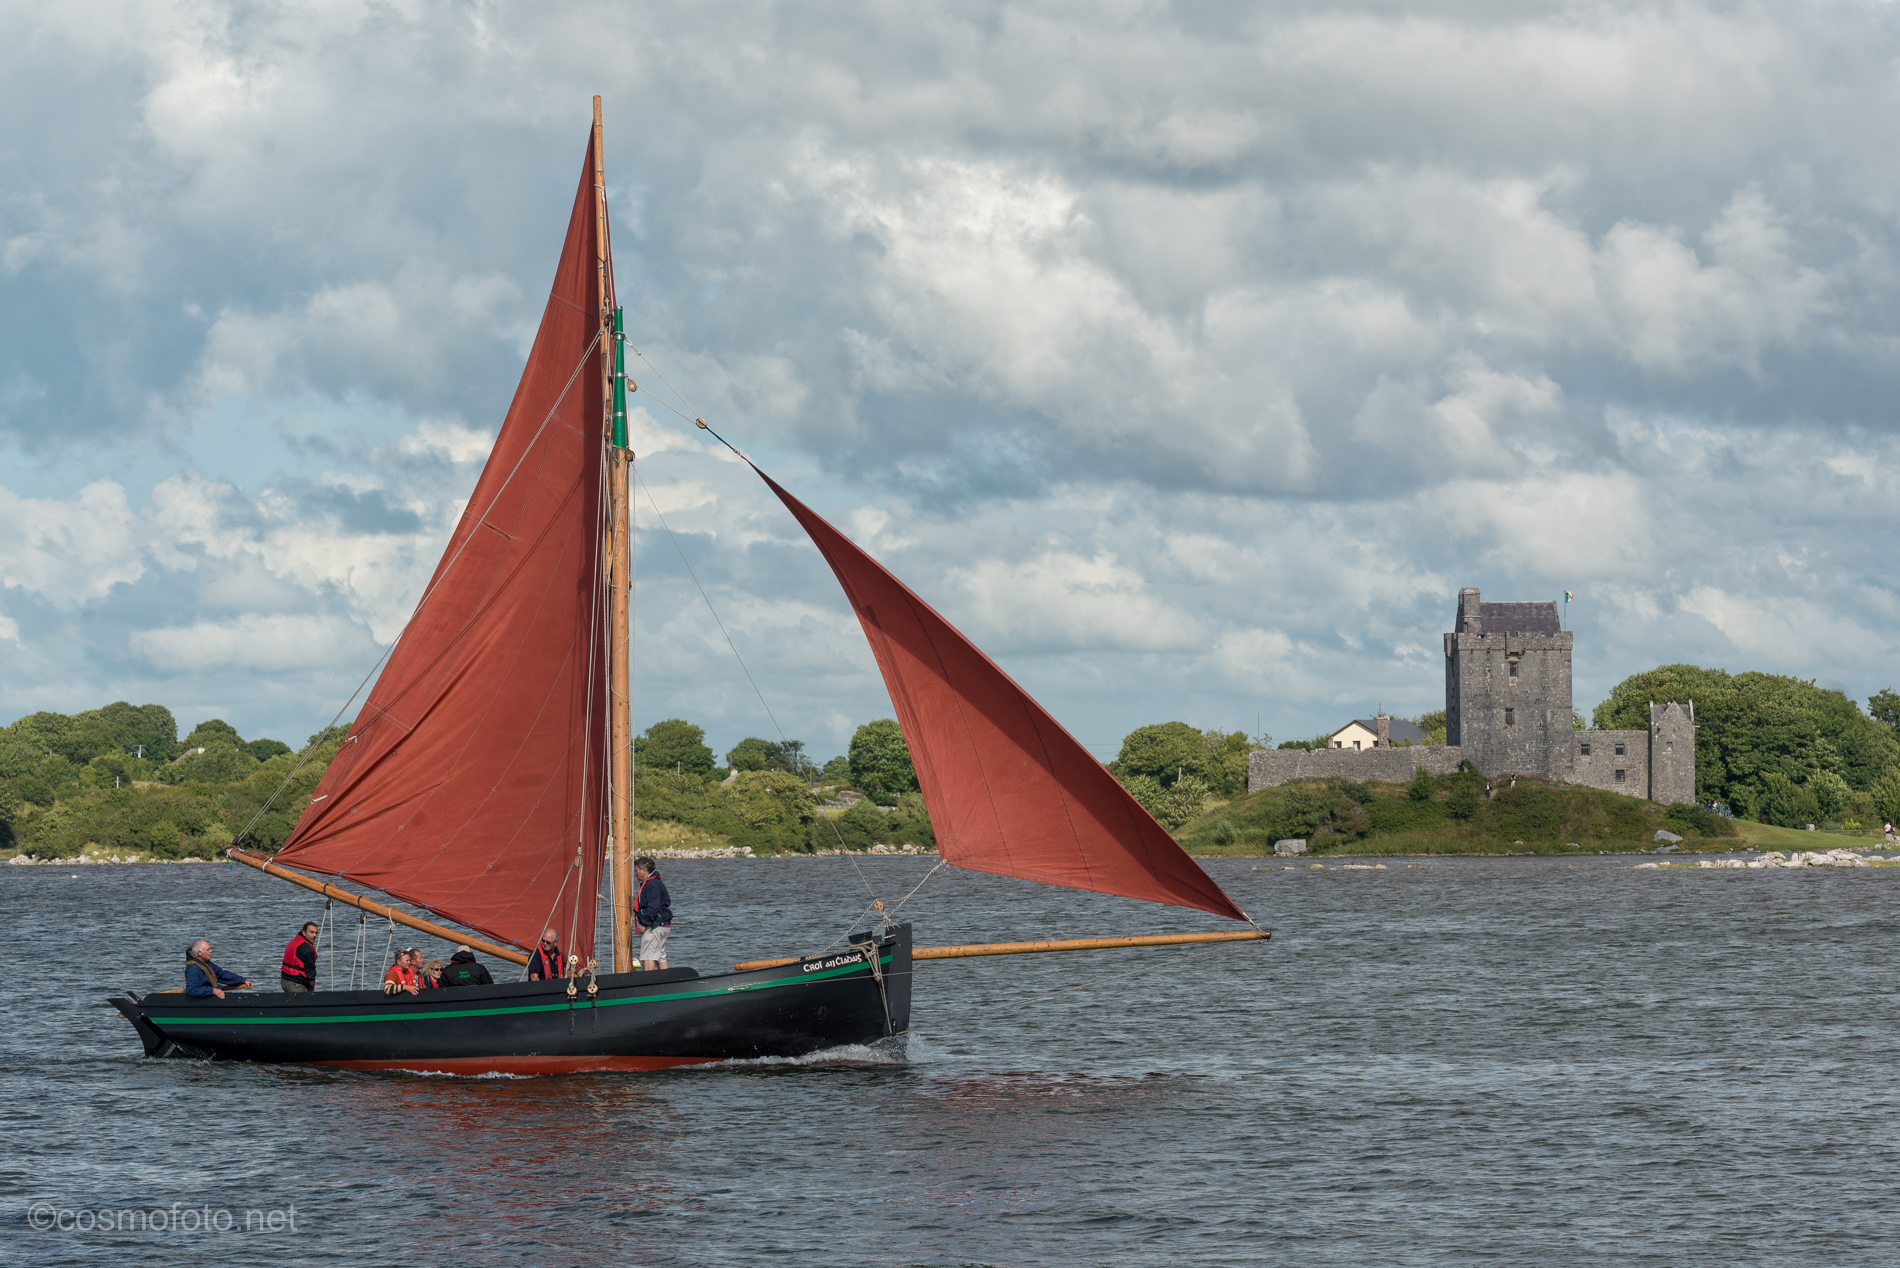 A hooker sails into Kinvara, Dunguaire castle in the background